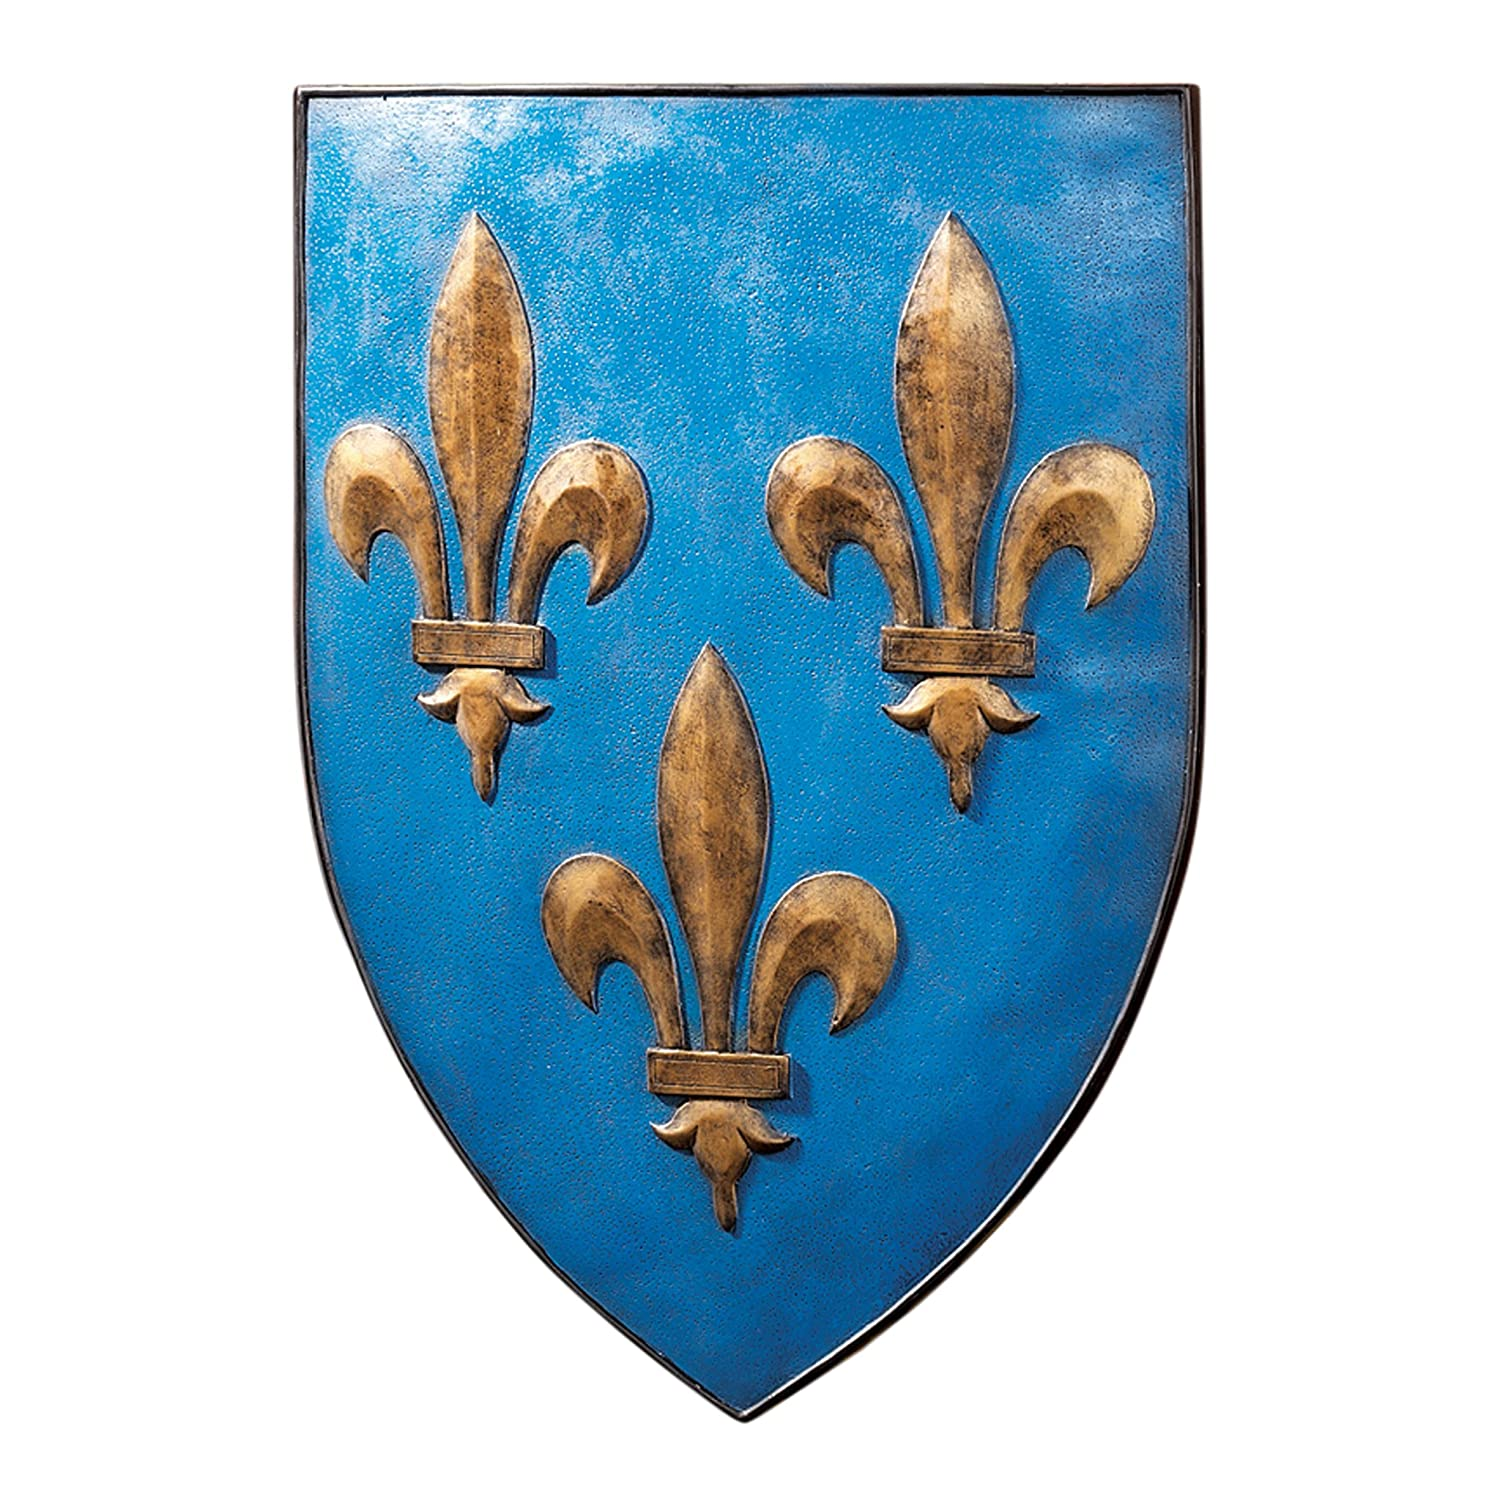 Design Toscano Grand Arms of France Wall Shield Collection- Fleur-De-Lis Shield CL47023-Parent